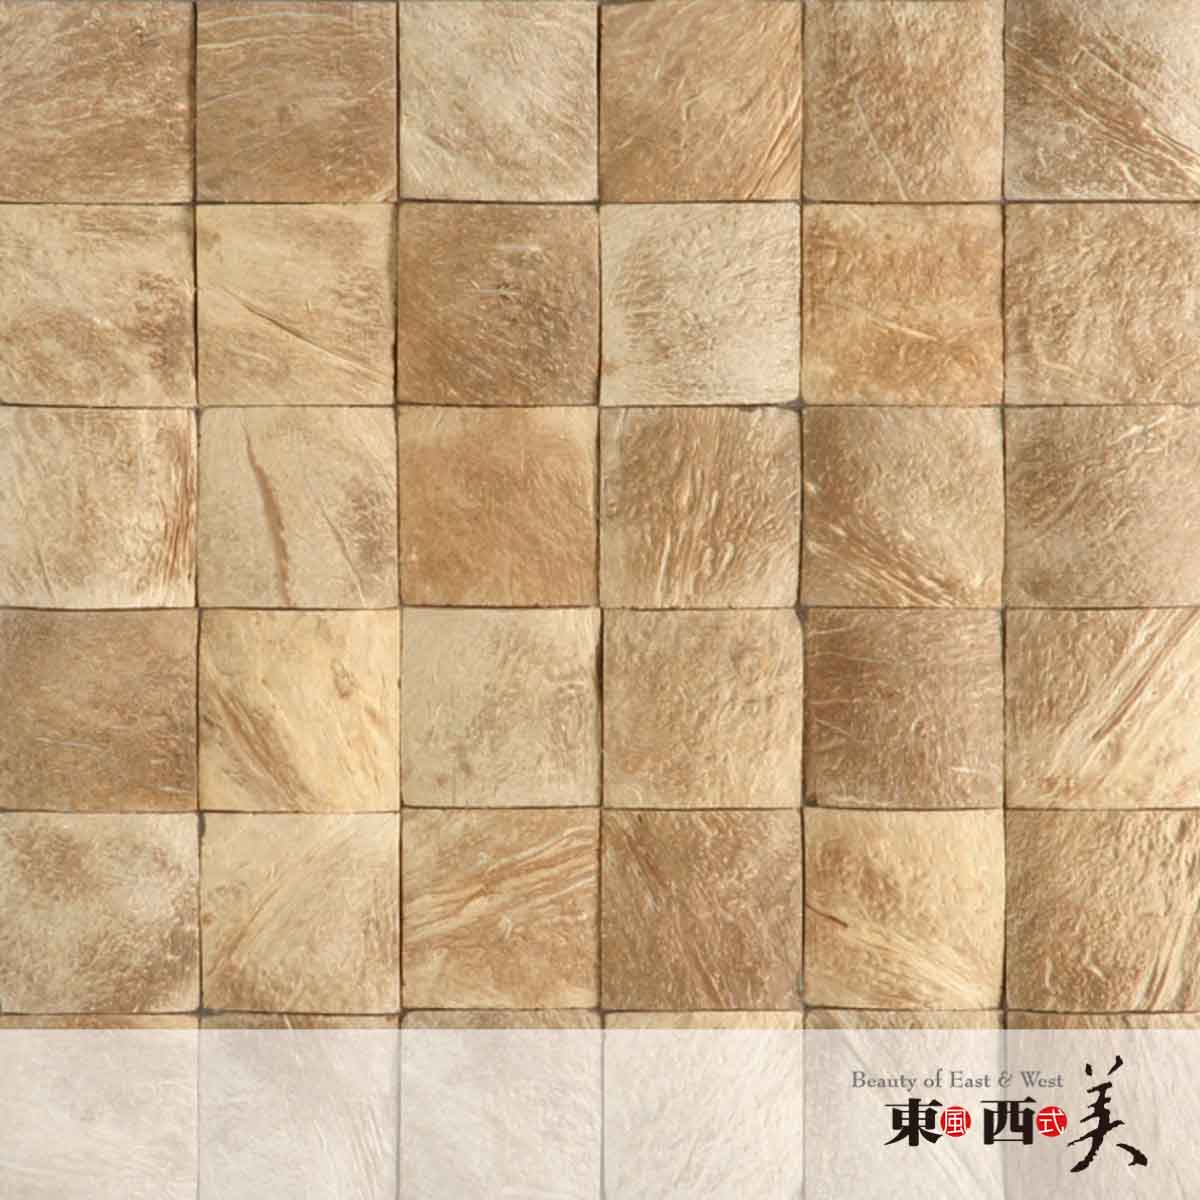 Decorative Mosaic Coconut Tiles for Wall Decor | Coconut Tiles Suppliers